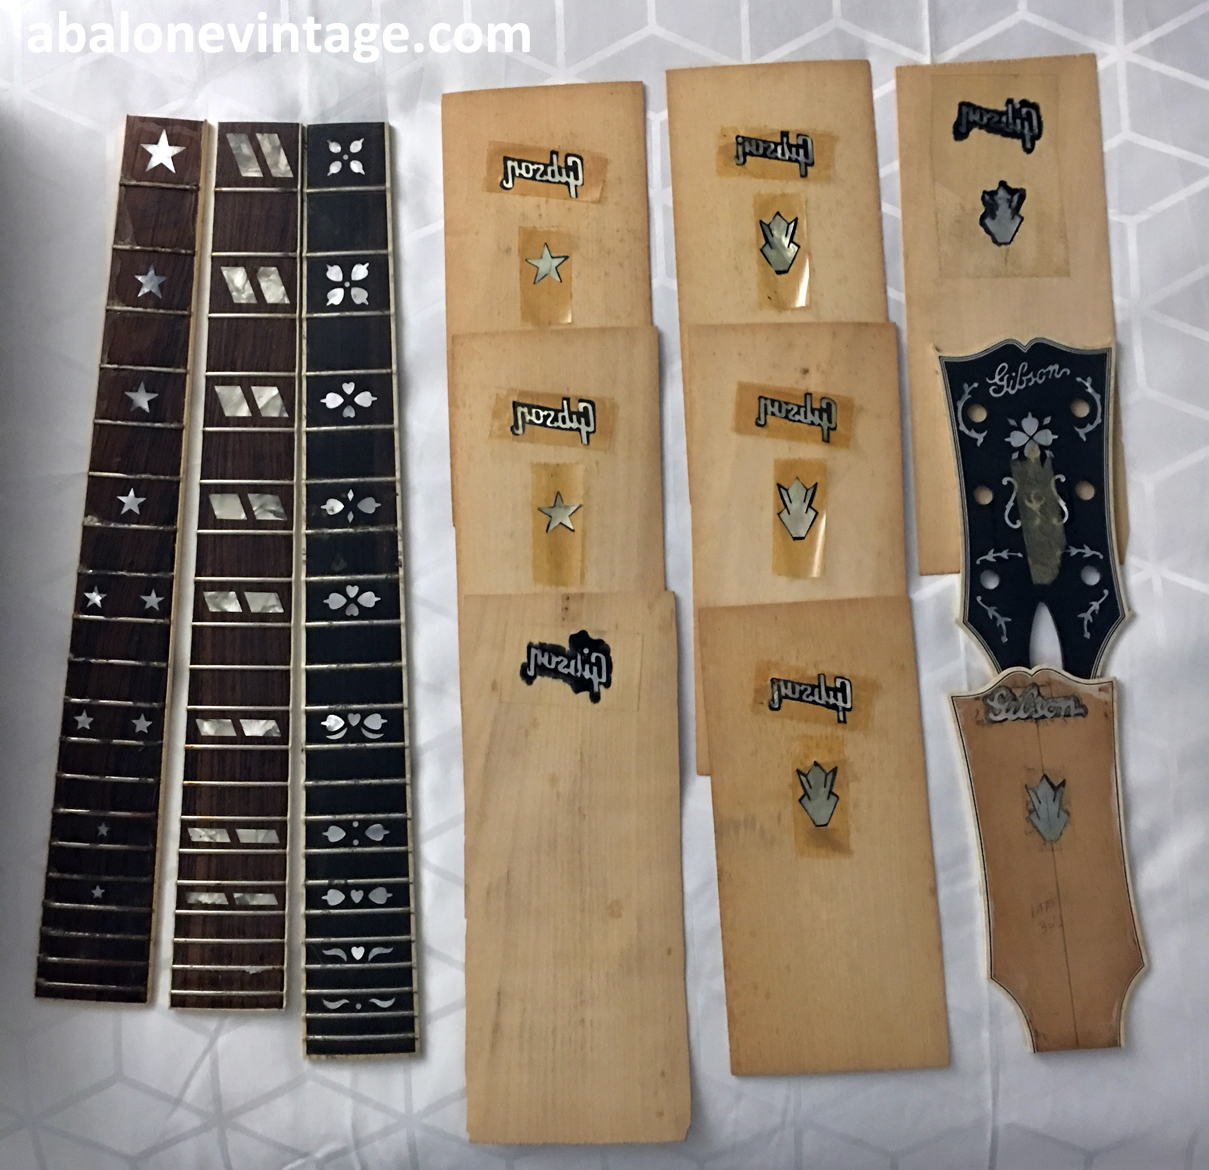 gibson guitars original nos fingerboards and headstock overlays. Black Bedroom Furniture Sets. Home Design Ideas